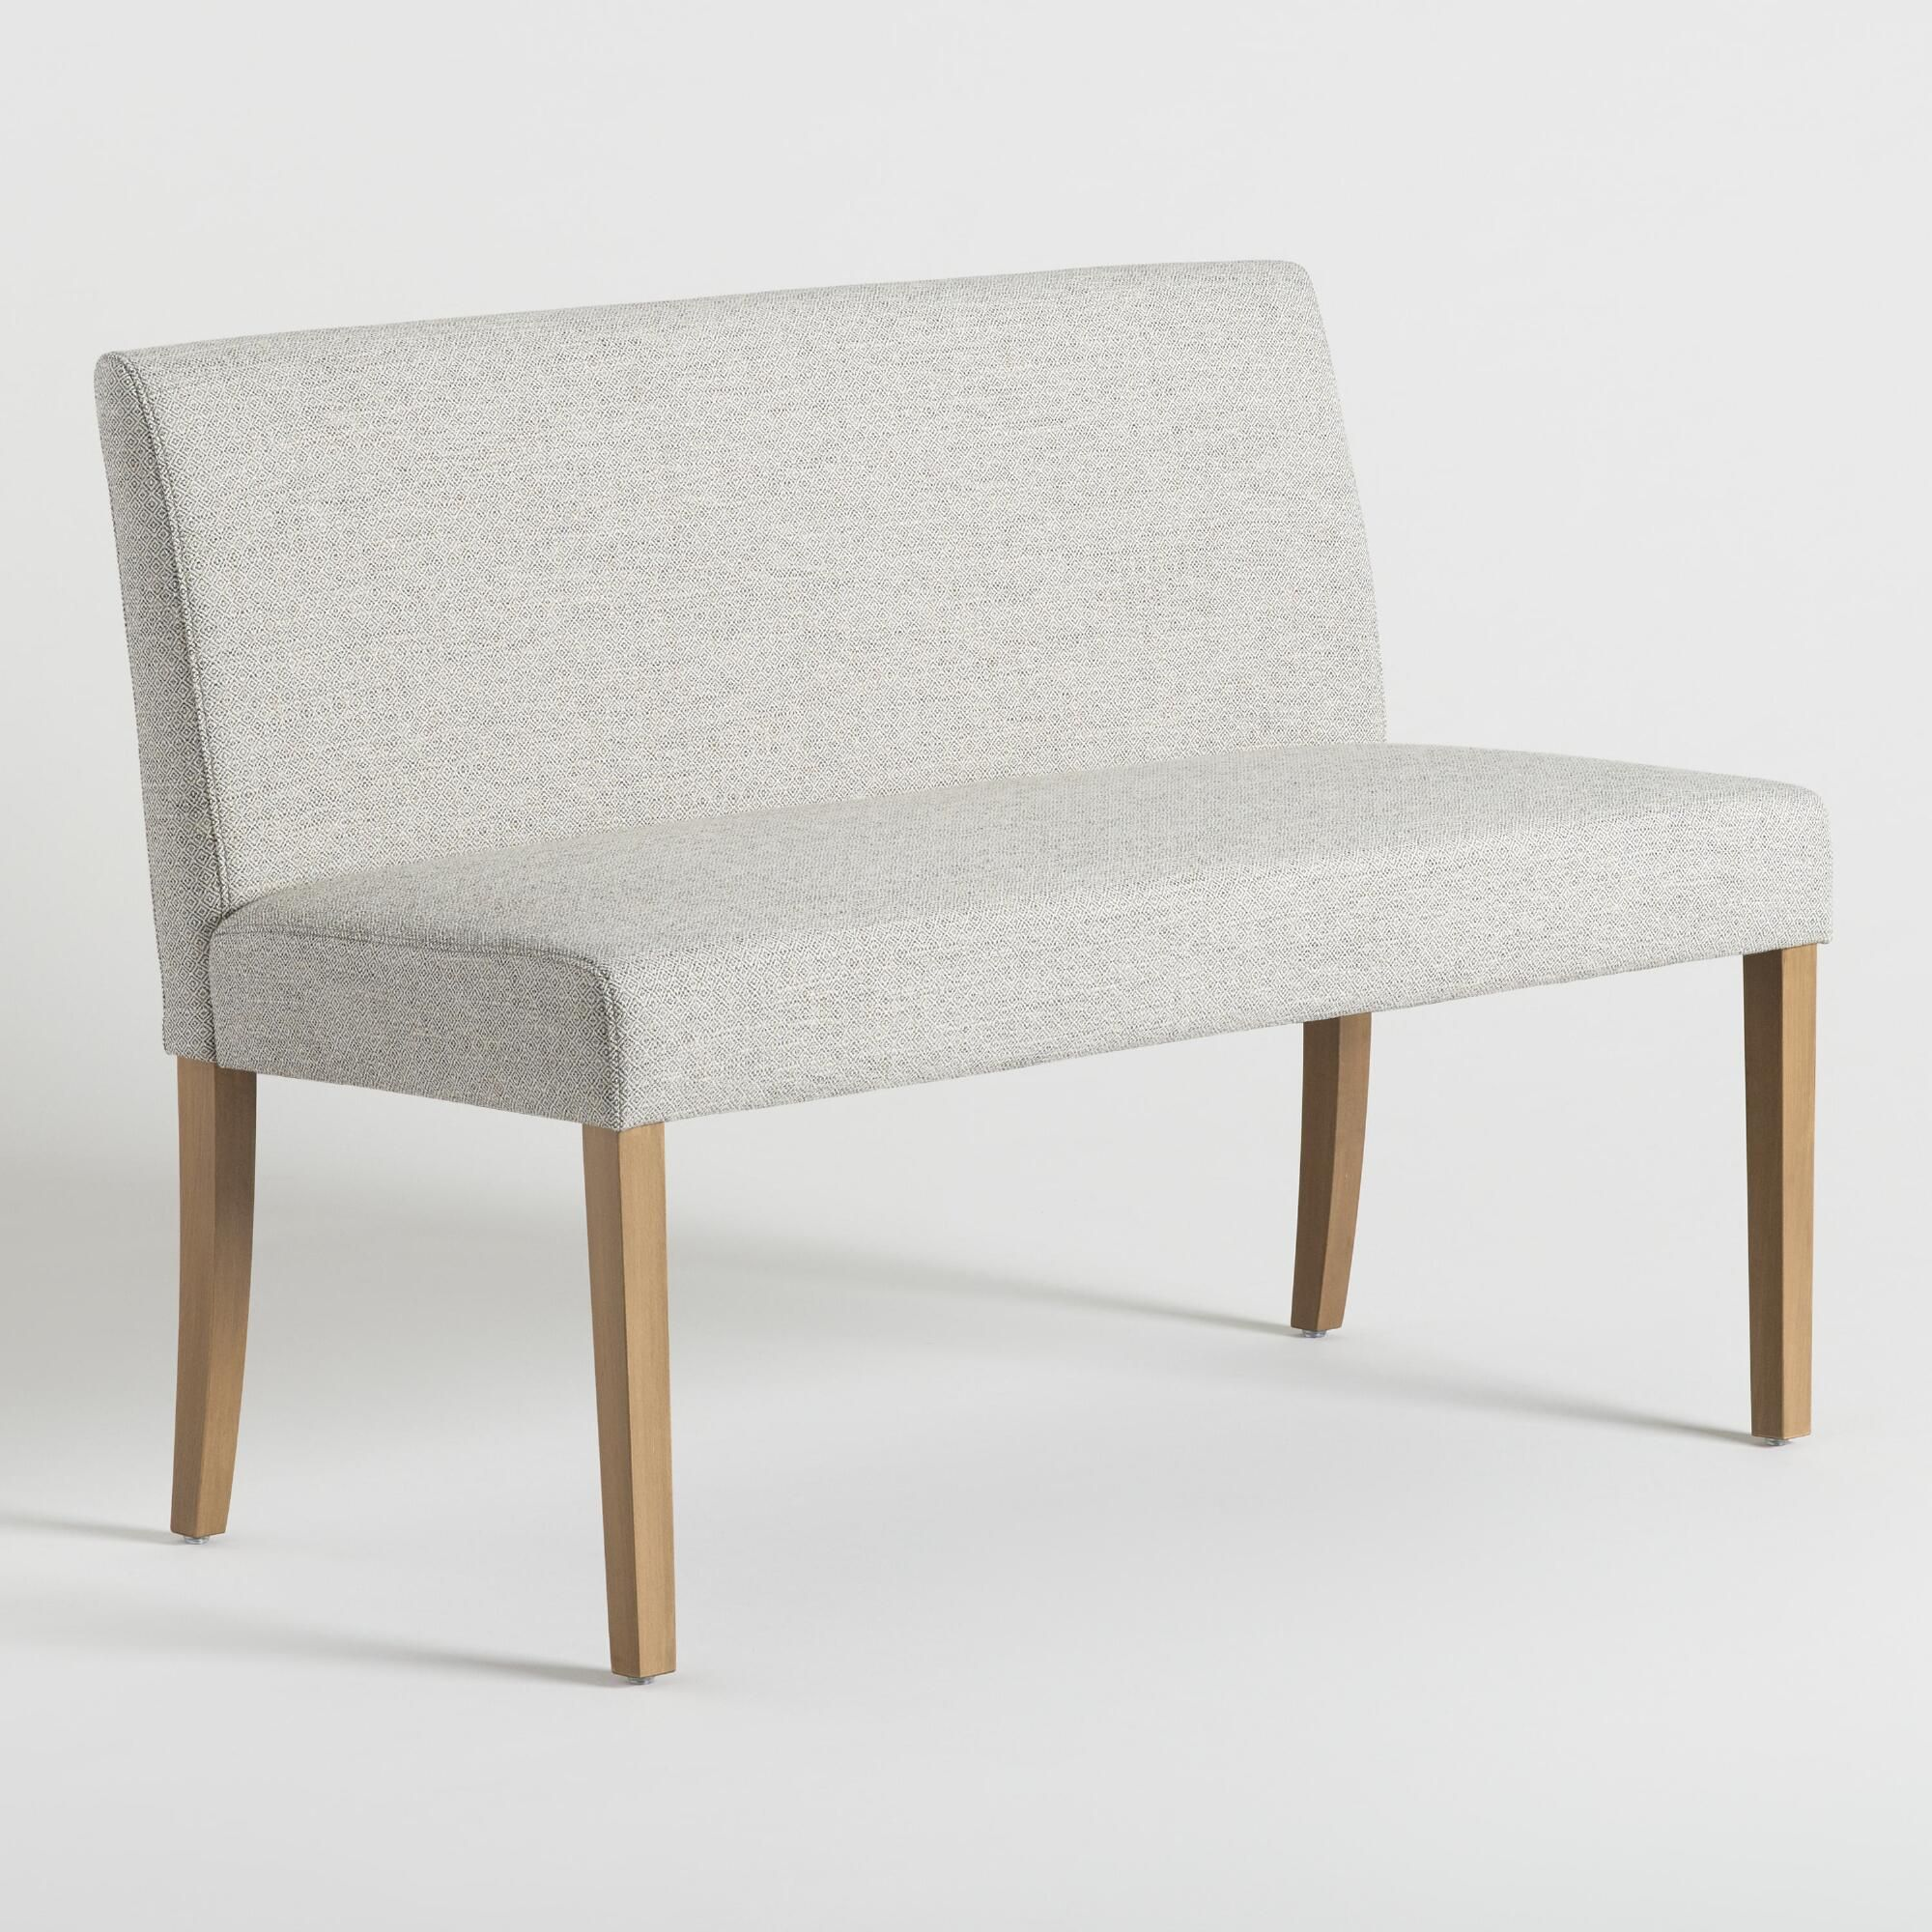 Gray Fletcher Upholstered Dining Bench By World Market In 2020